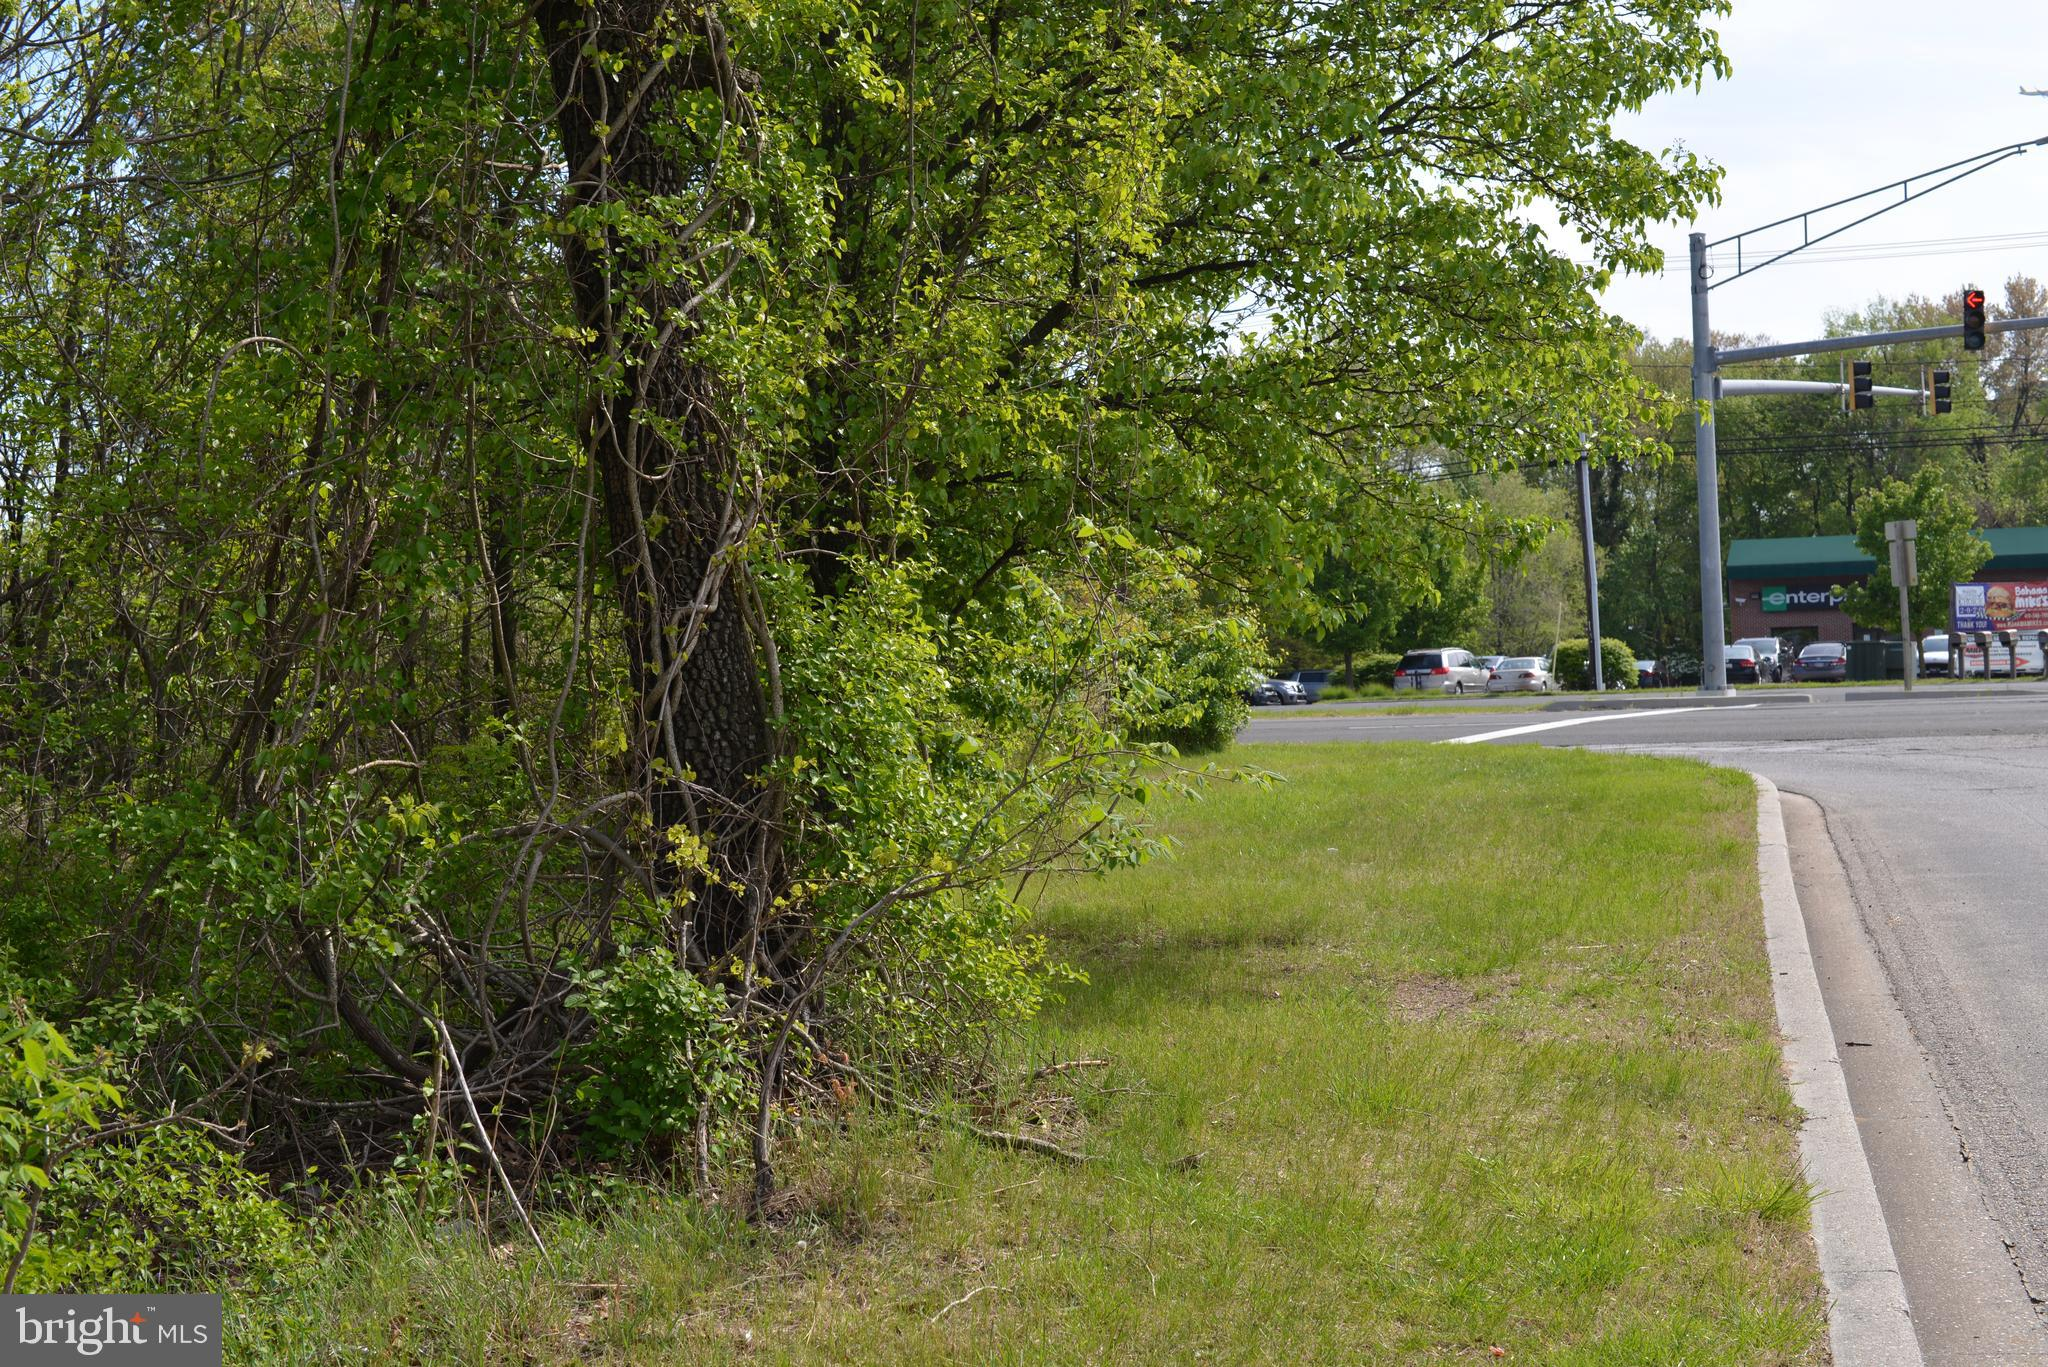 8163 RITCHIE HIGHWAY, PASADENA, Maryland 21122, ,Lots And Land,For Sale,8163 RITCHIE HIGHWAY,1000130352